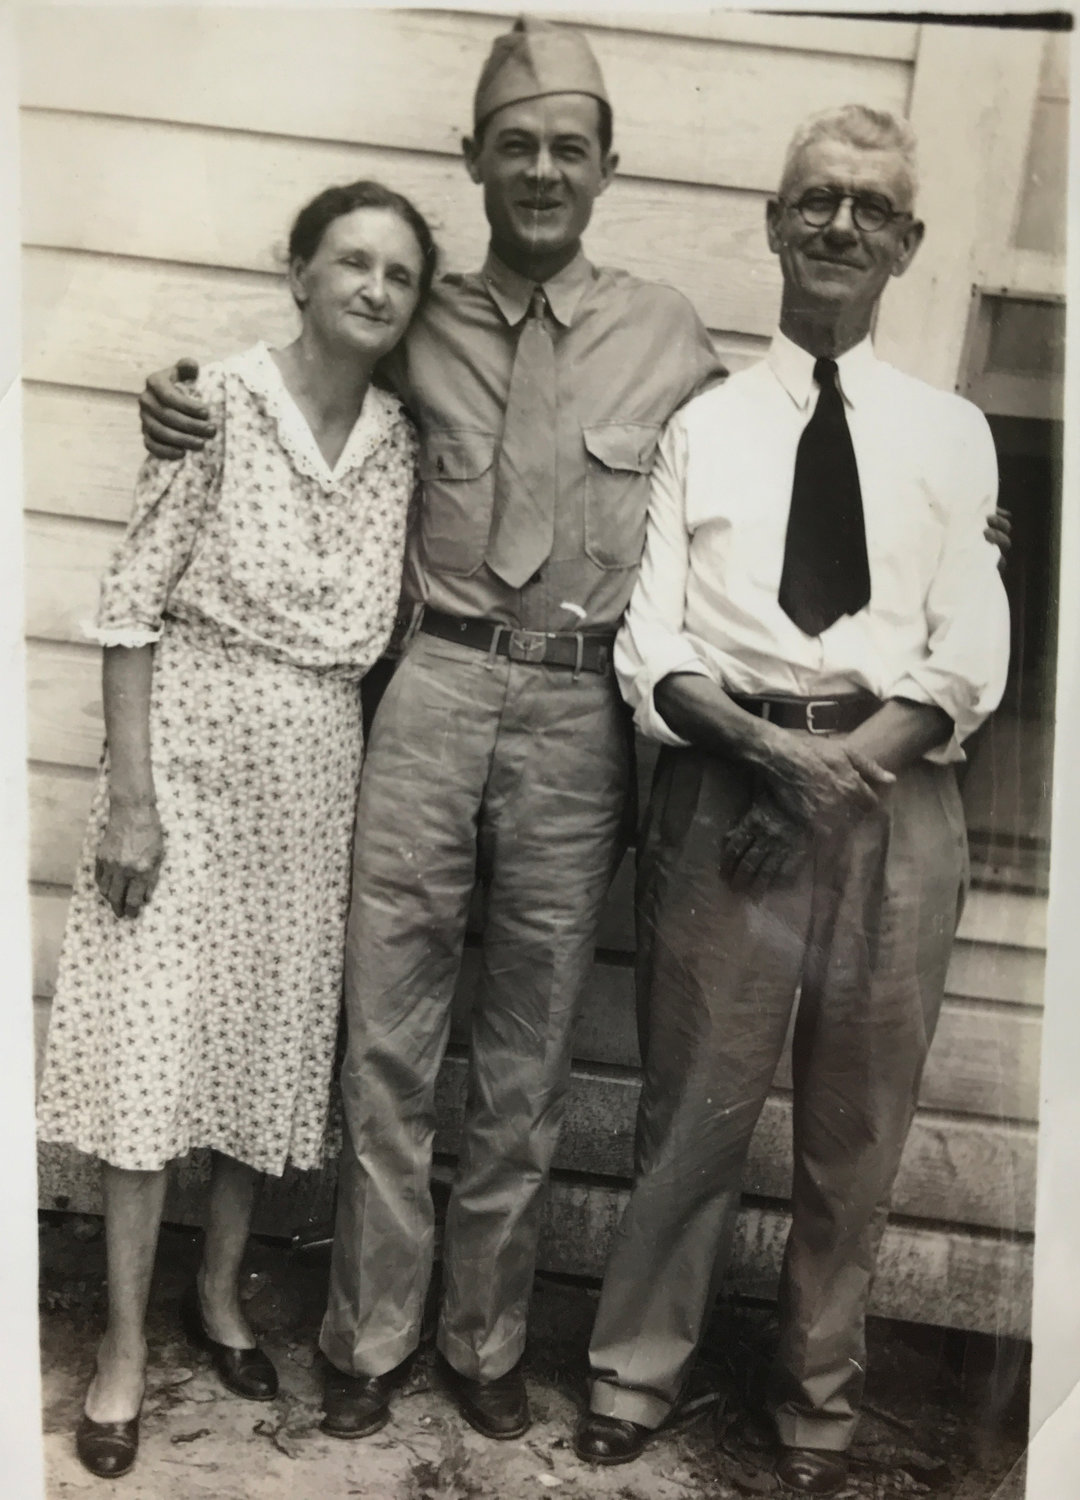 Bob Hester in uniform with his parents David and Maggie Hester during World War II.